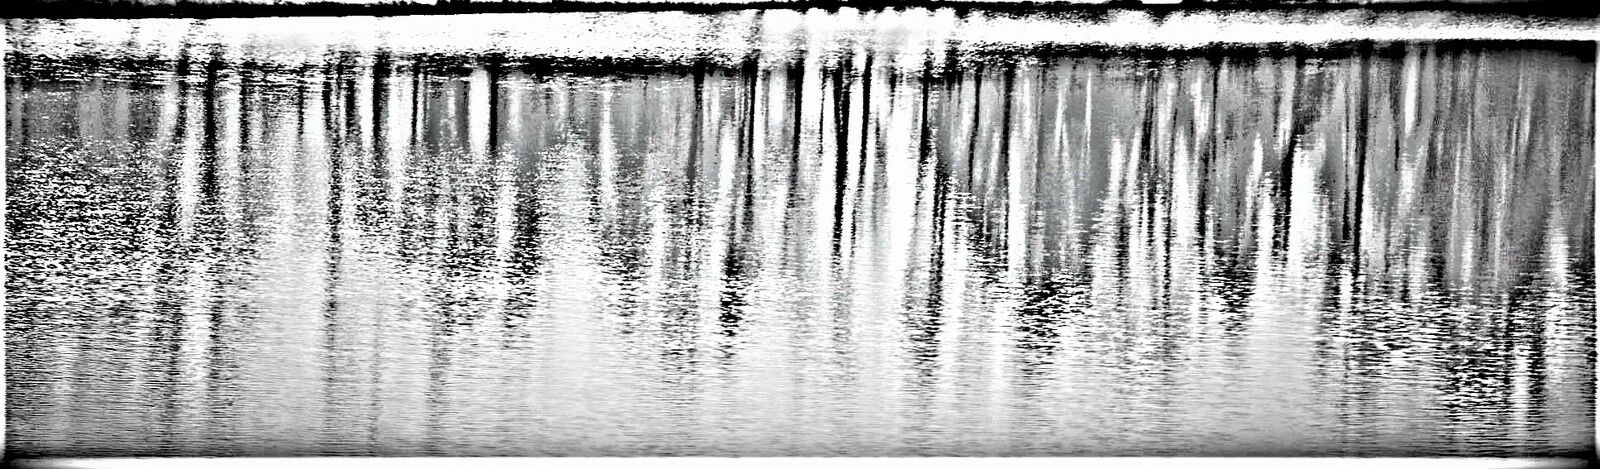 Schwarzweiss B/W S/W Black and White Experiments Photography